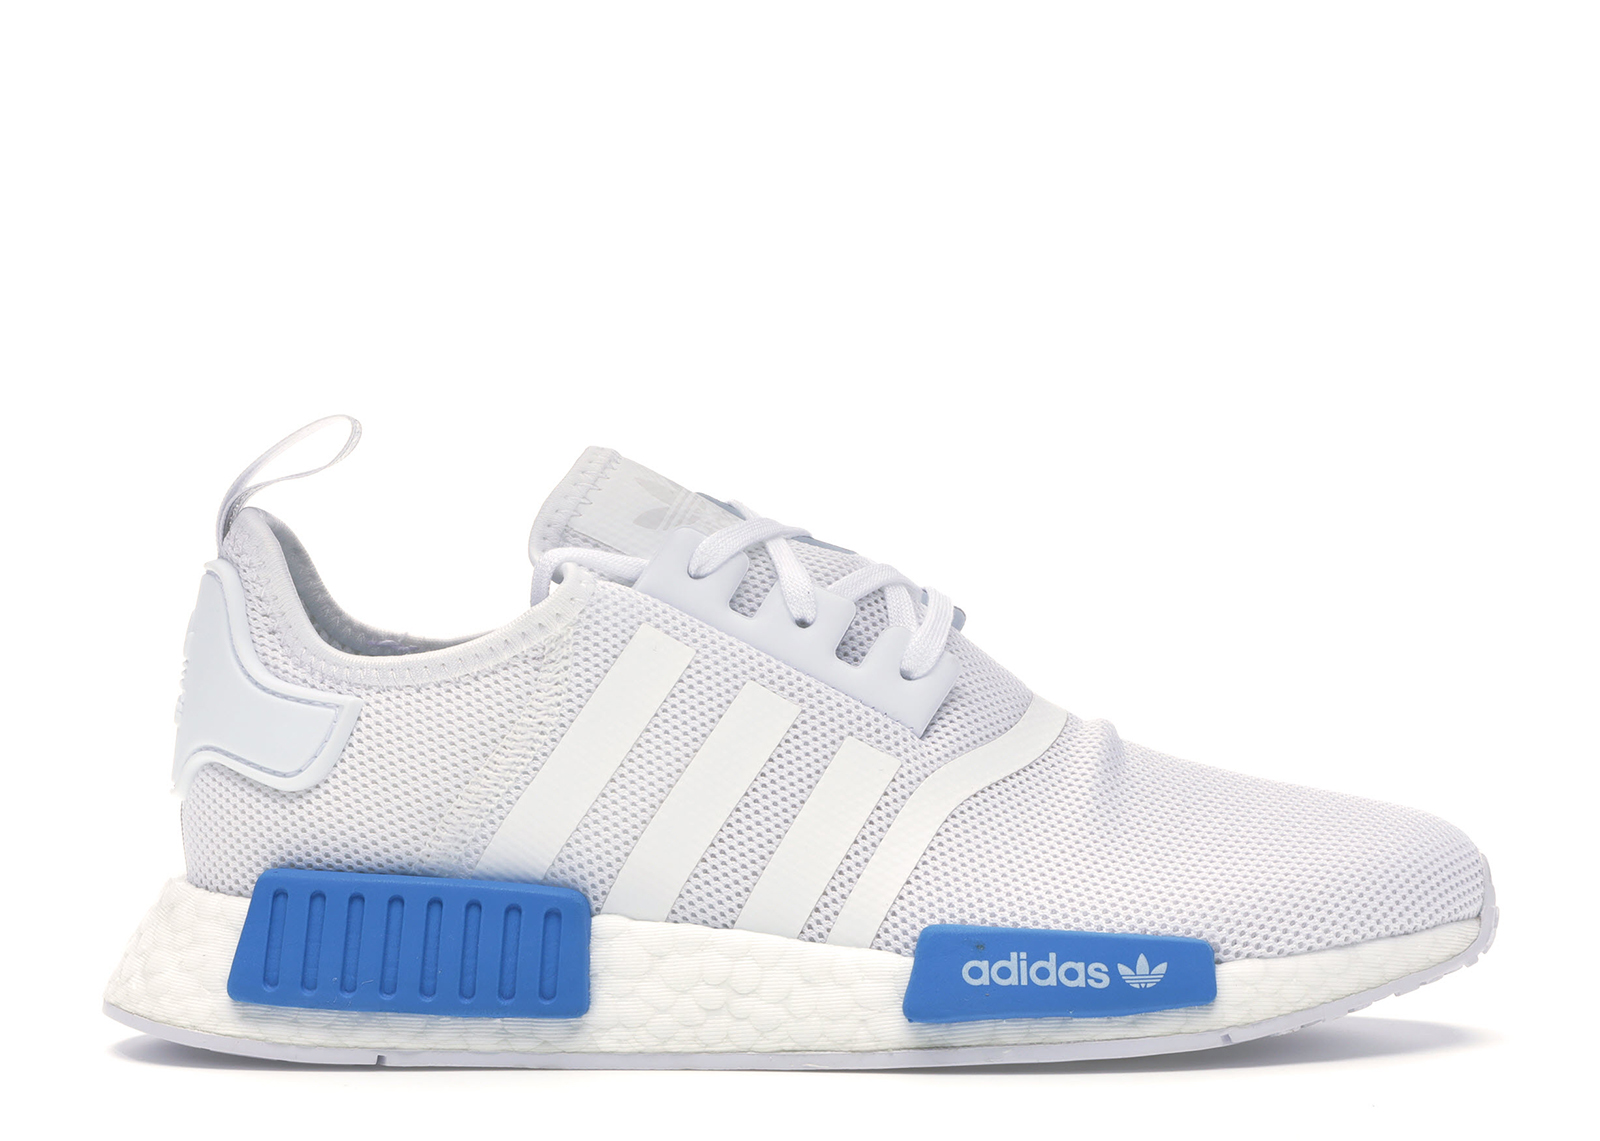 adidas NMD R1 Cloud White Bright Blue (Youth)